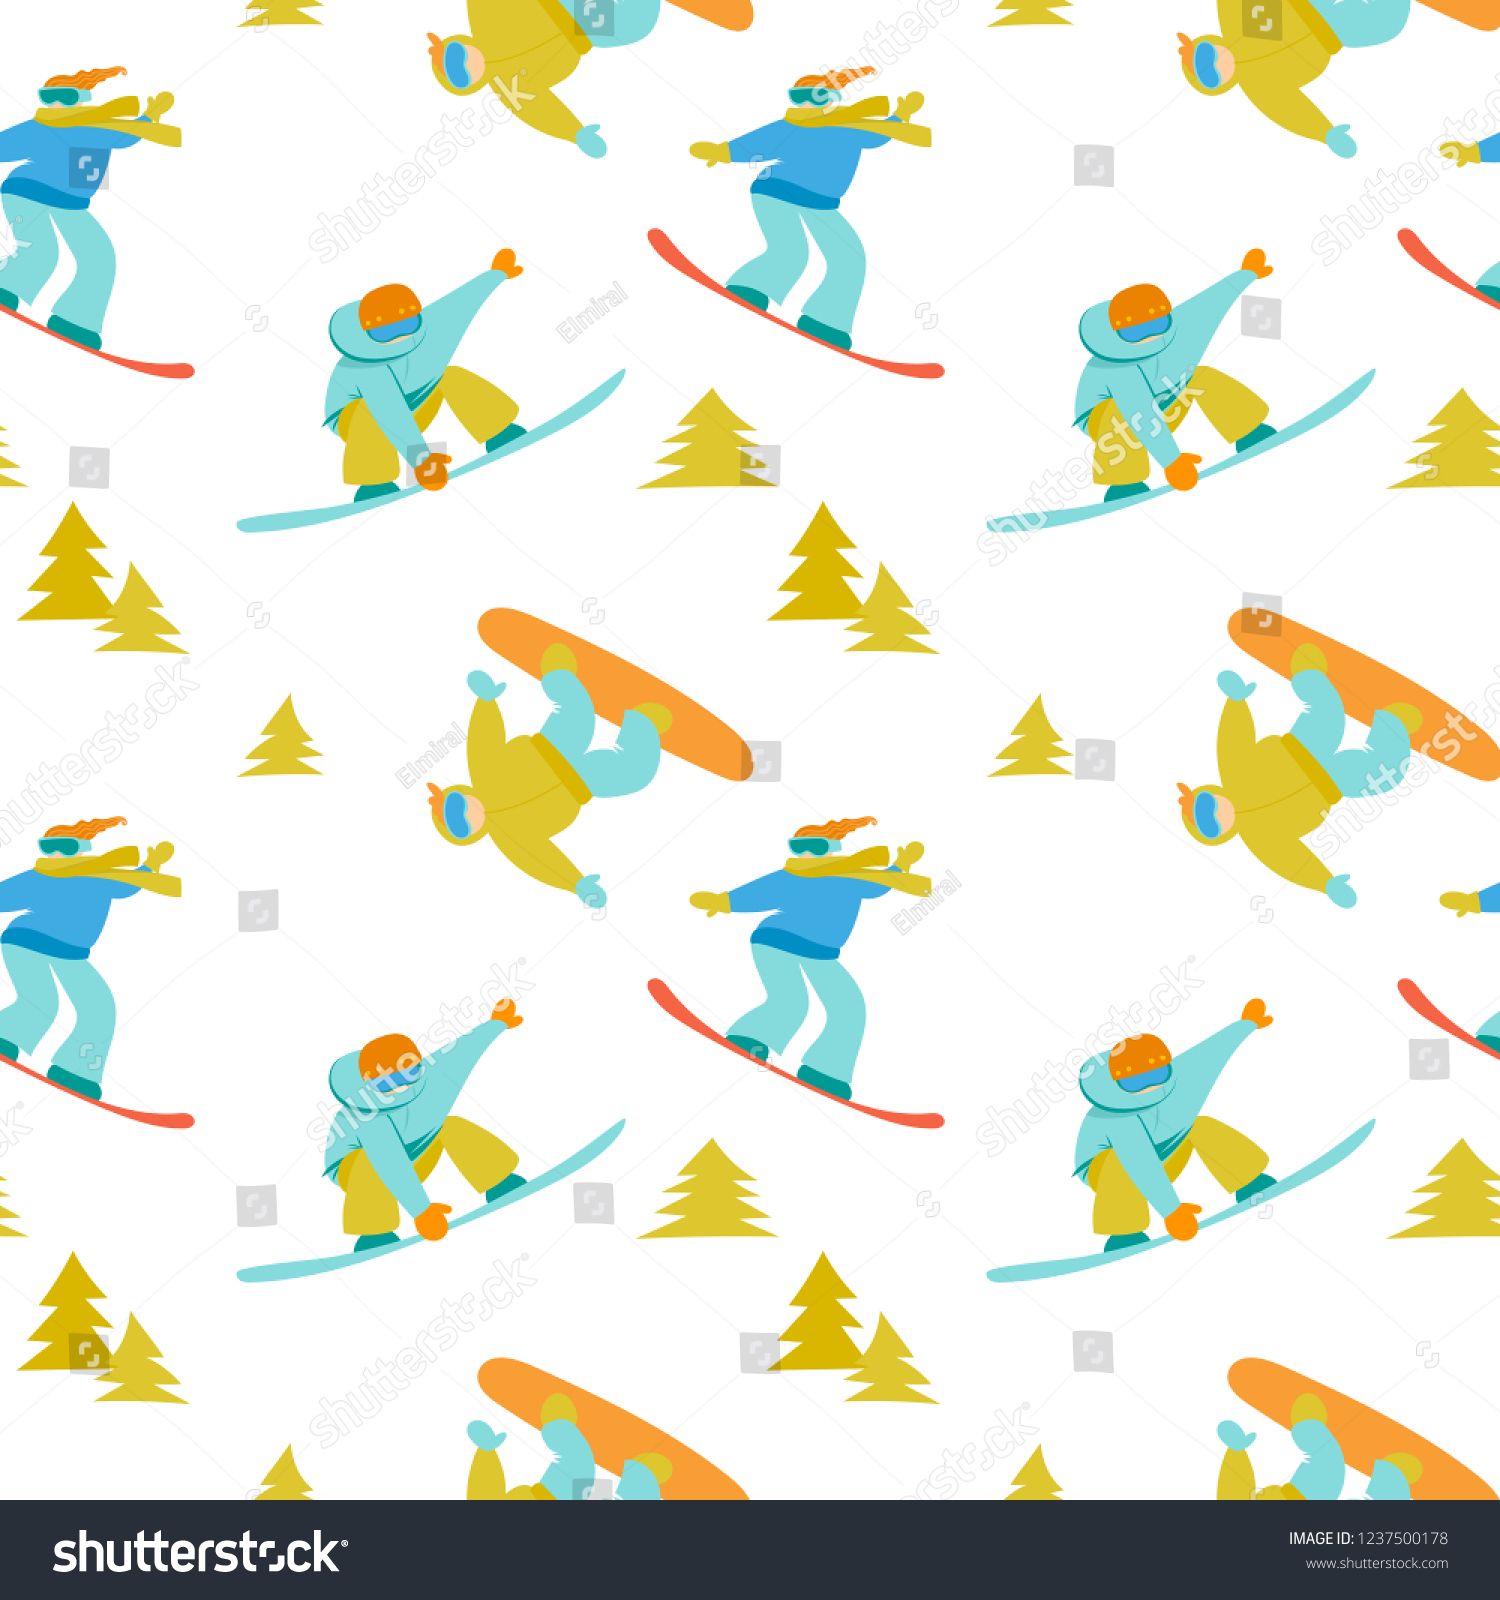 Christmas Sports Background.Snowboard Active Sports Background Snowboarders Vector Stock